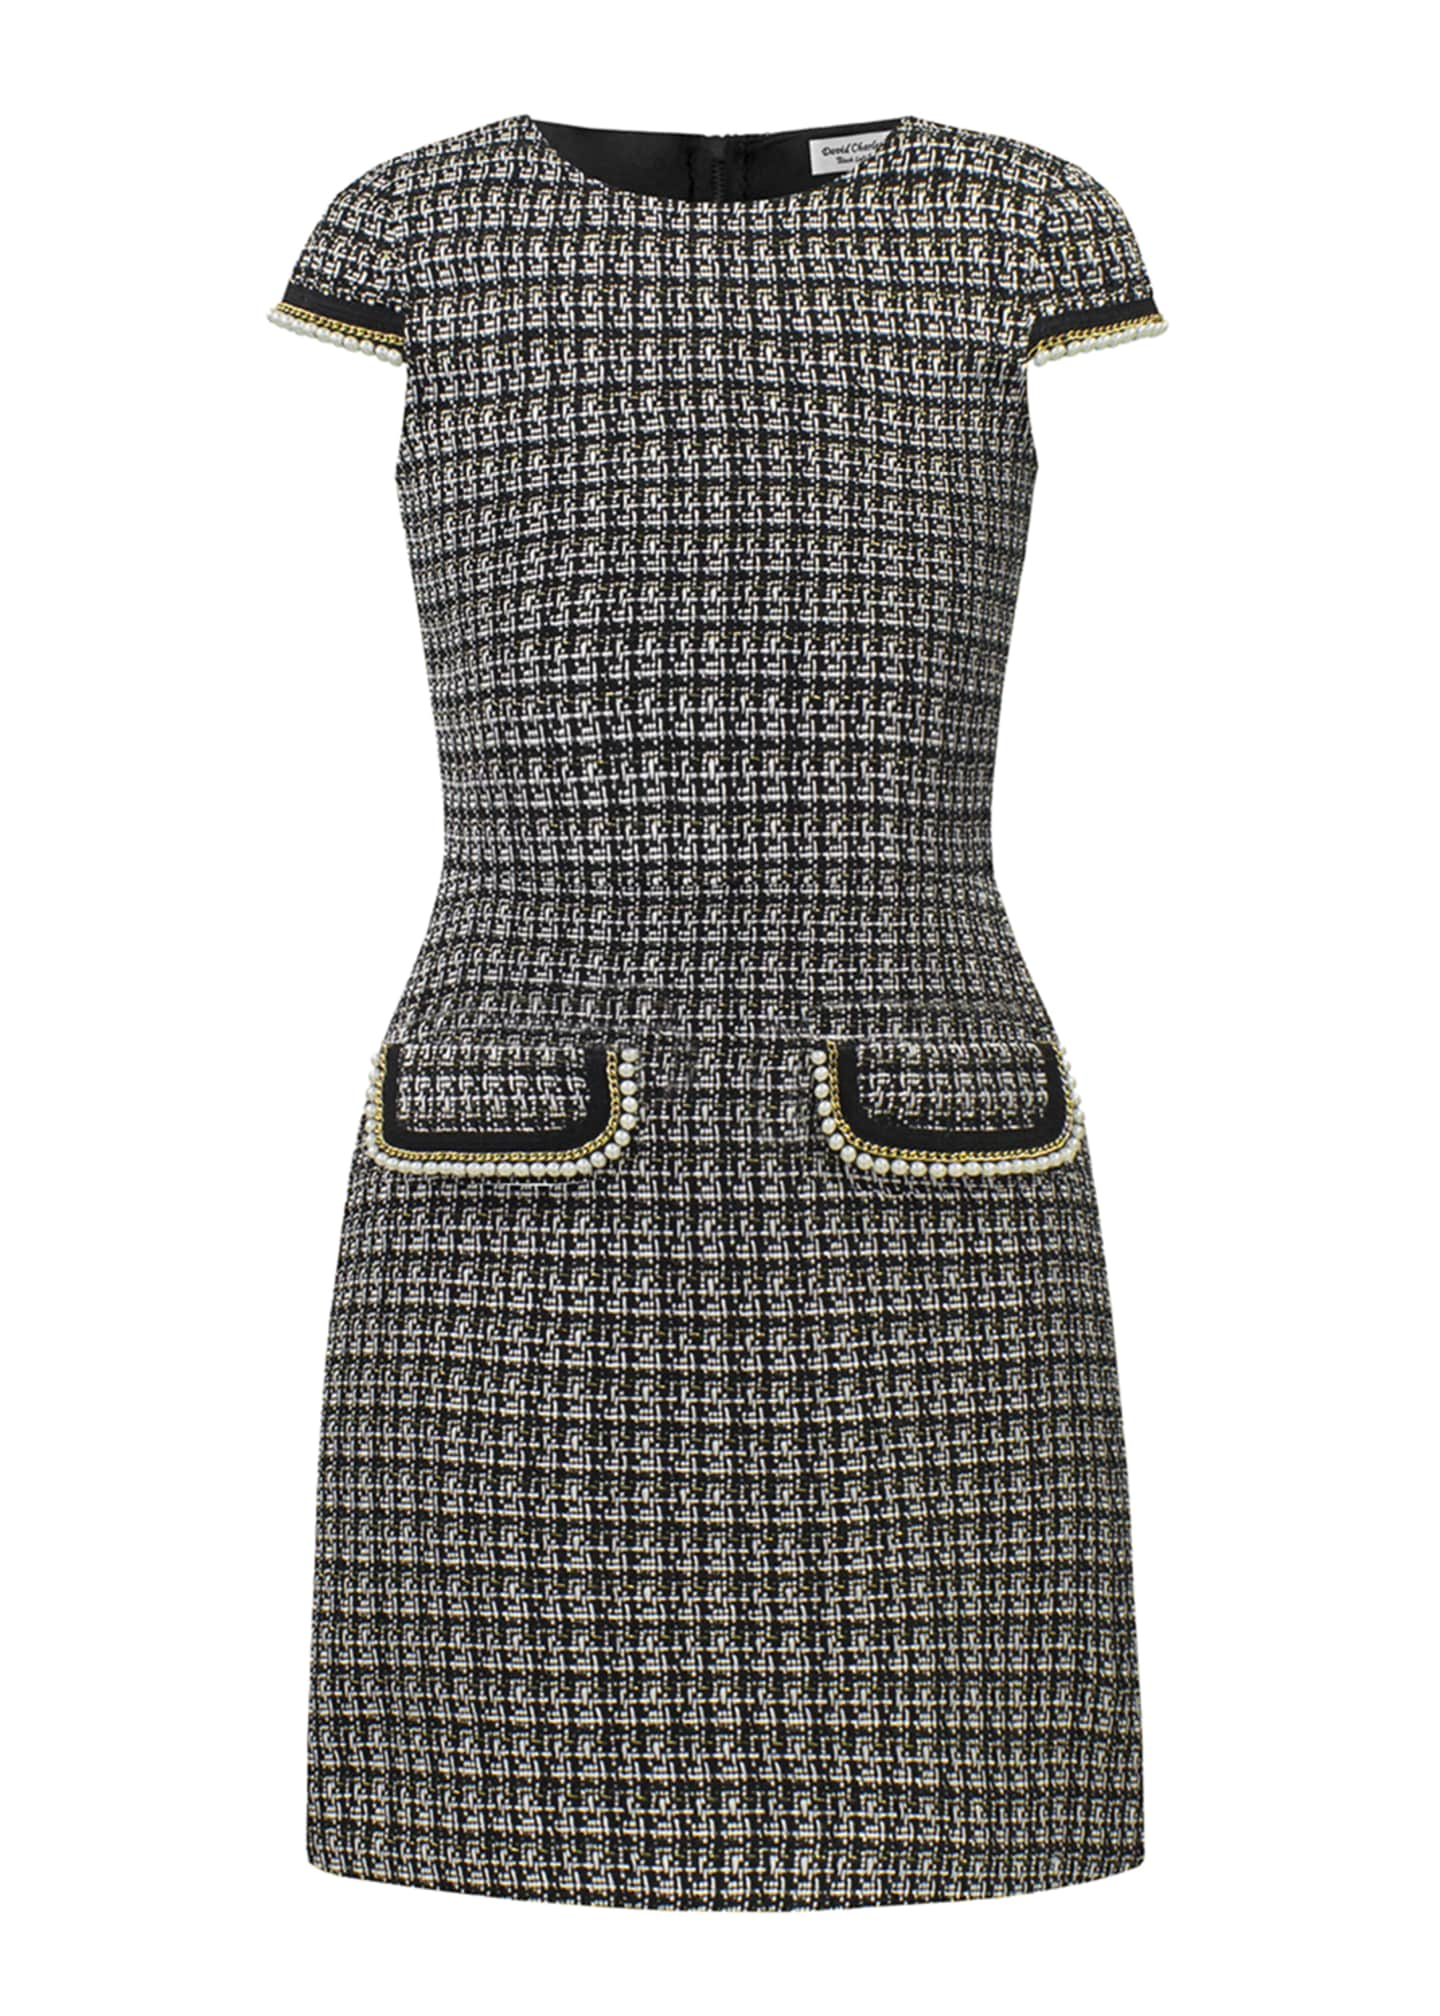 David Charles Tweed Faux Pearl Trim Dress, Size